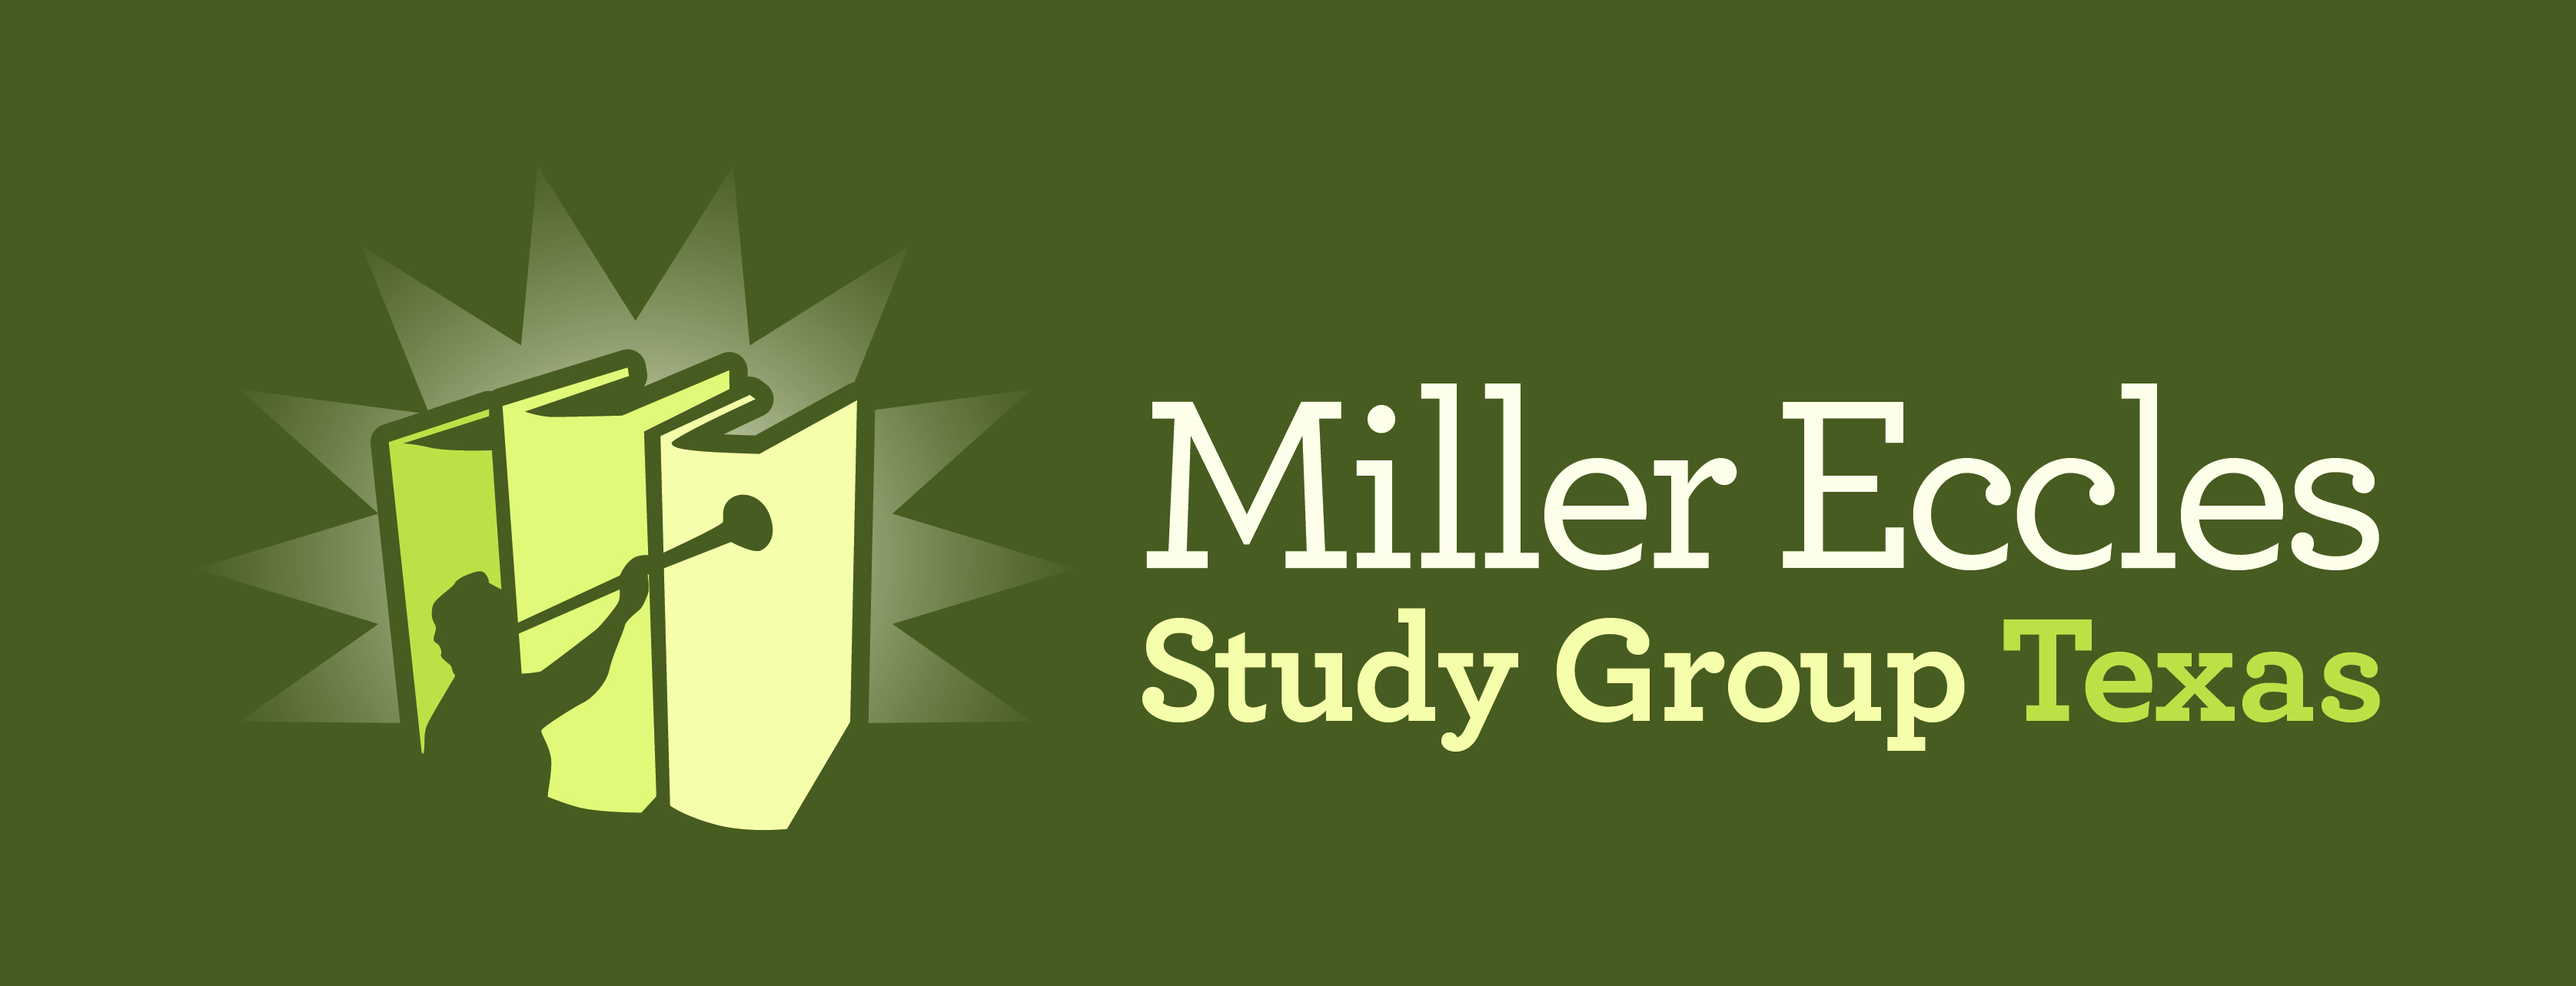 Miller Eccles Study Group Texas